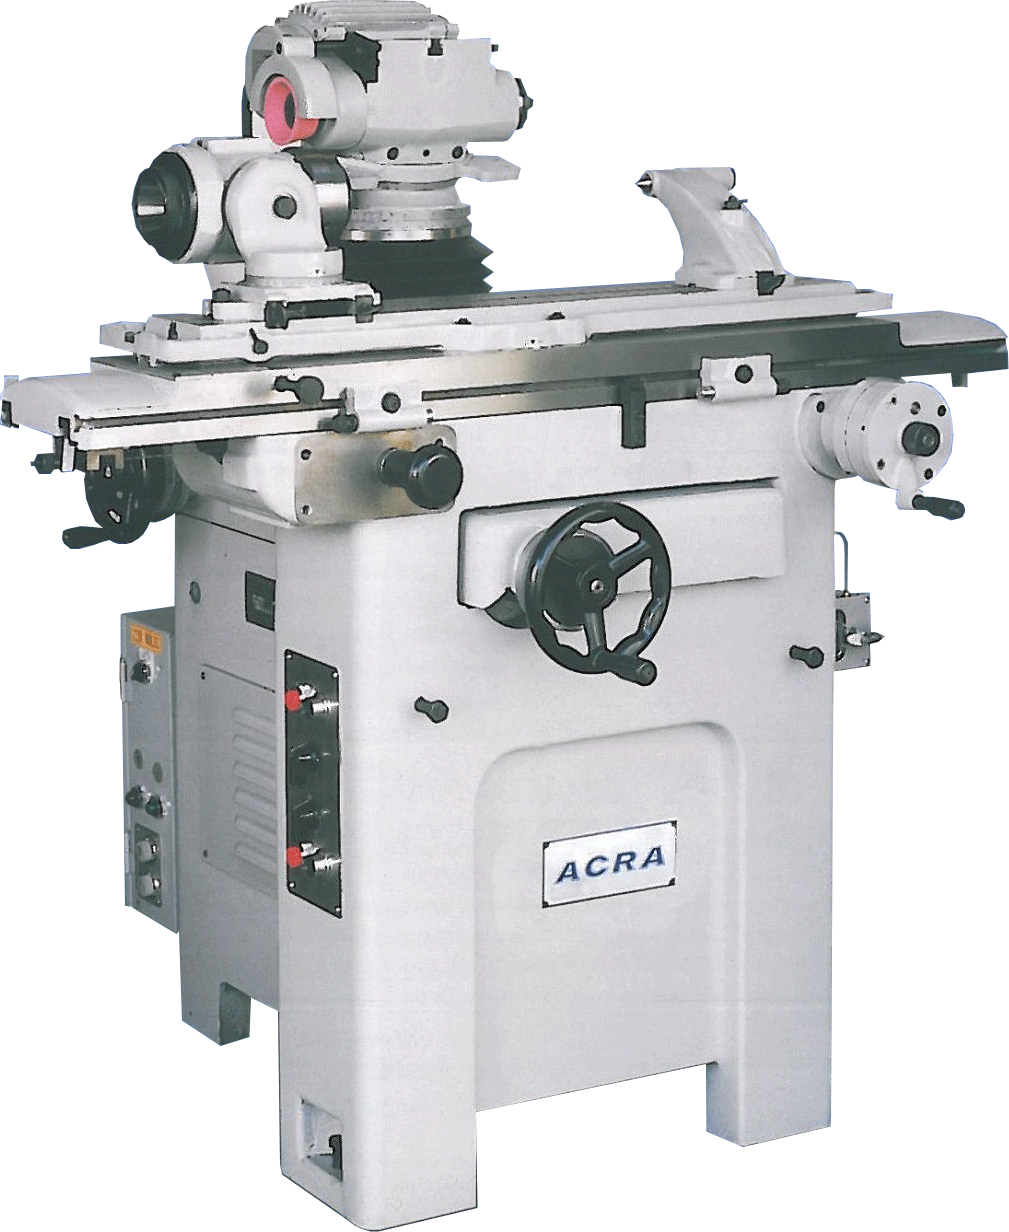 ACRA MODEL M-60 UNIVERSAL TOOL & CUTTER GRINDER